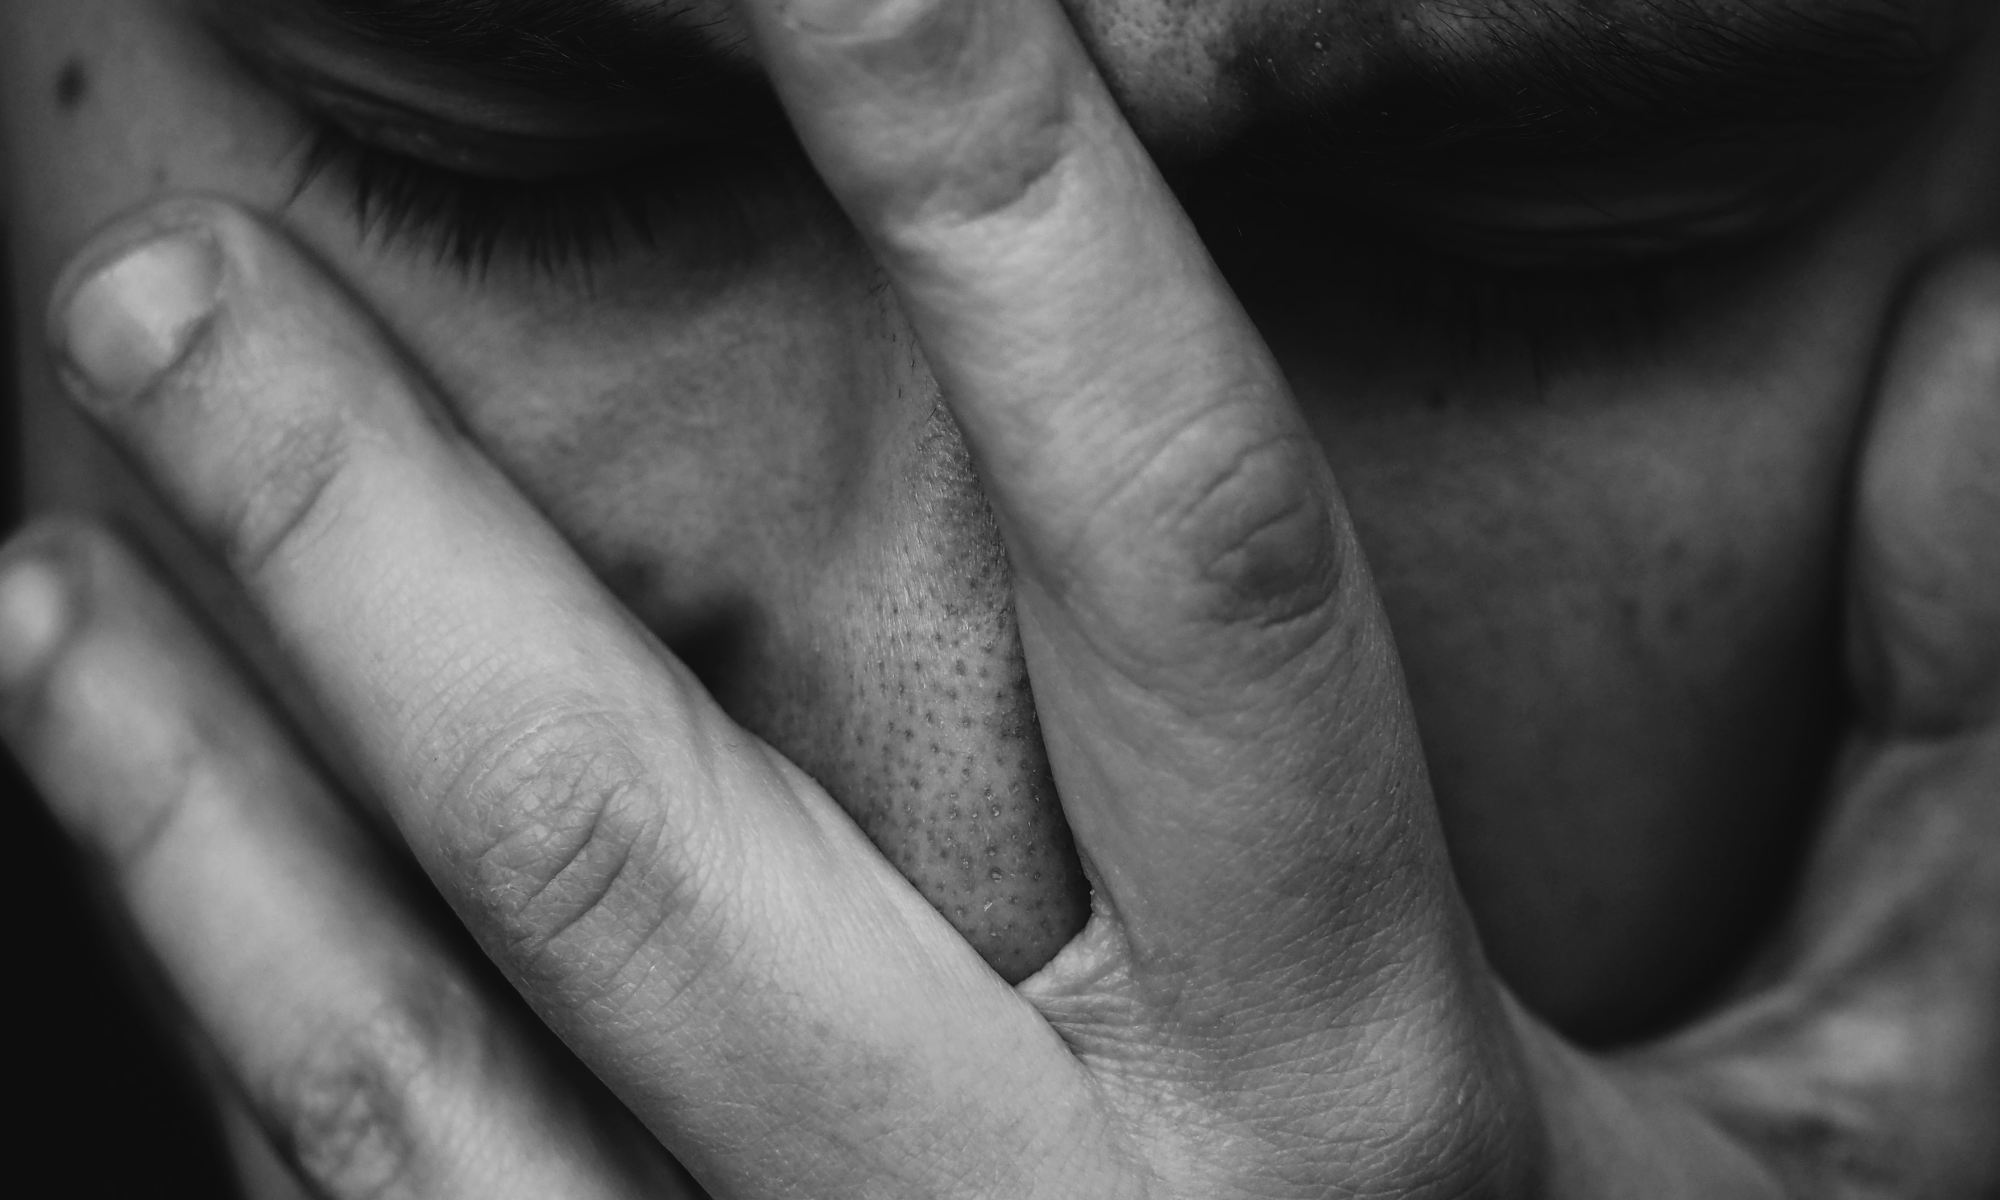 Grayscale photo of disappointed man holding hand on his face